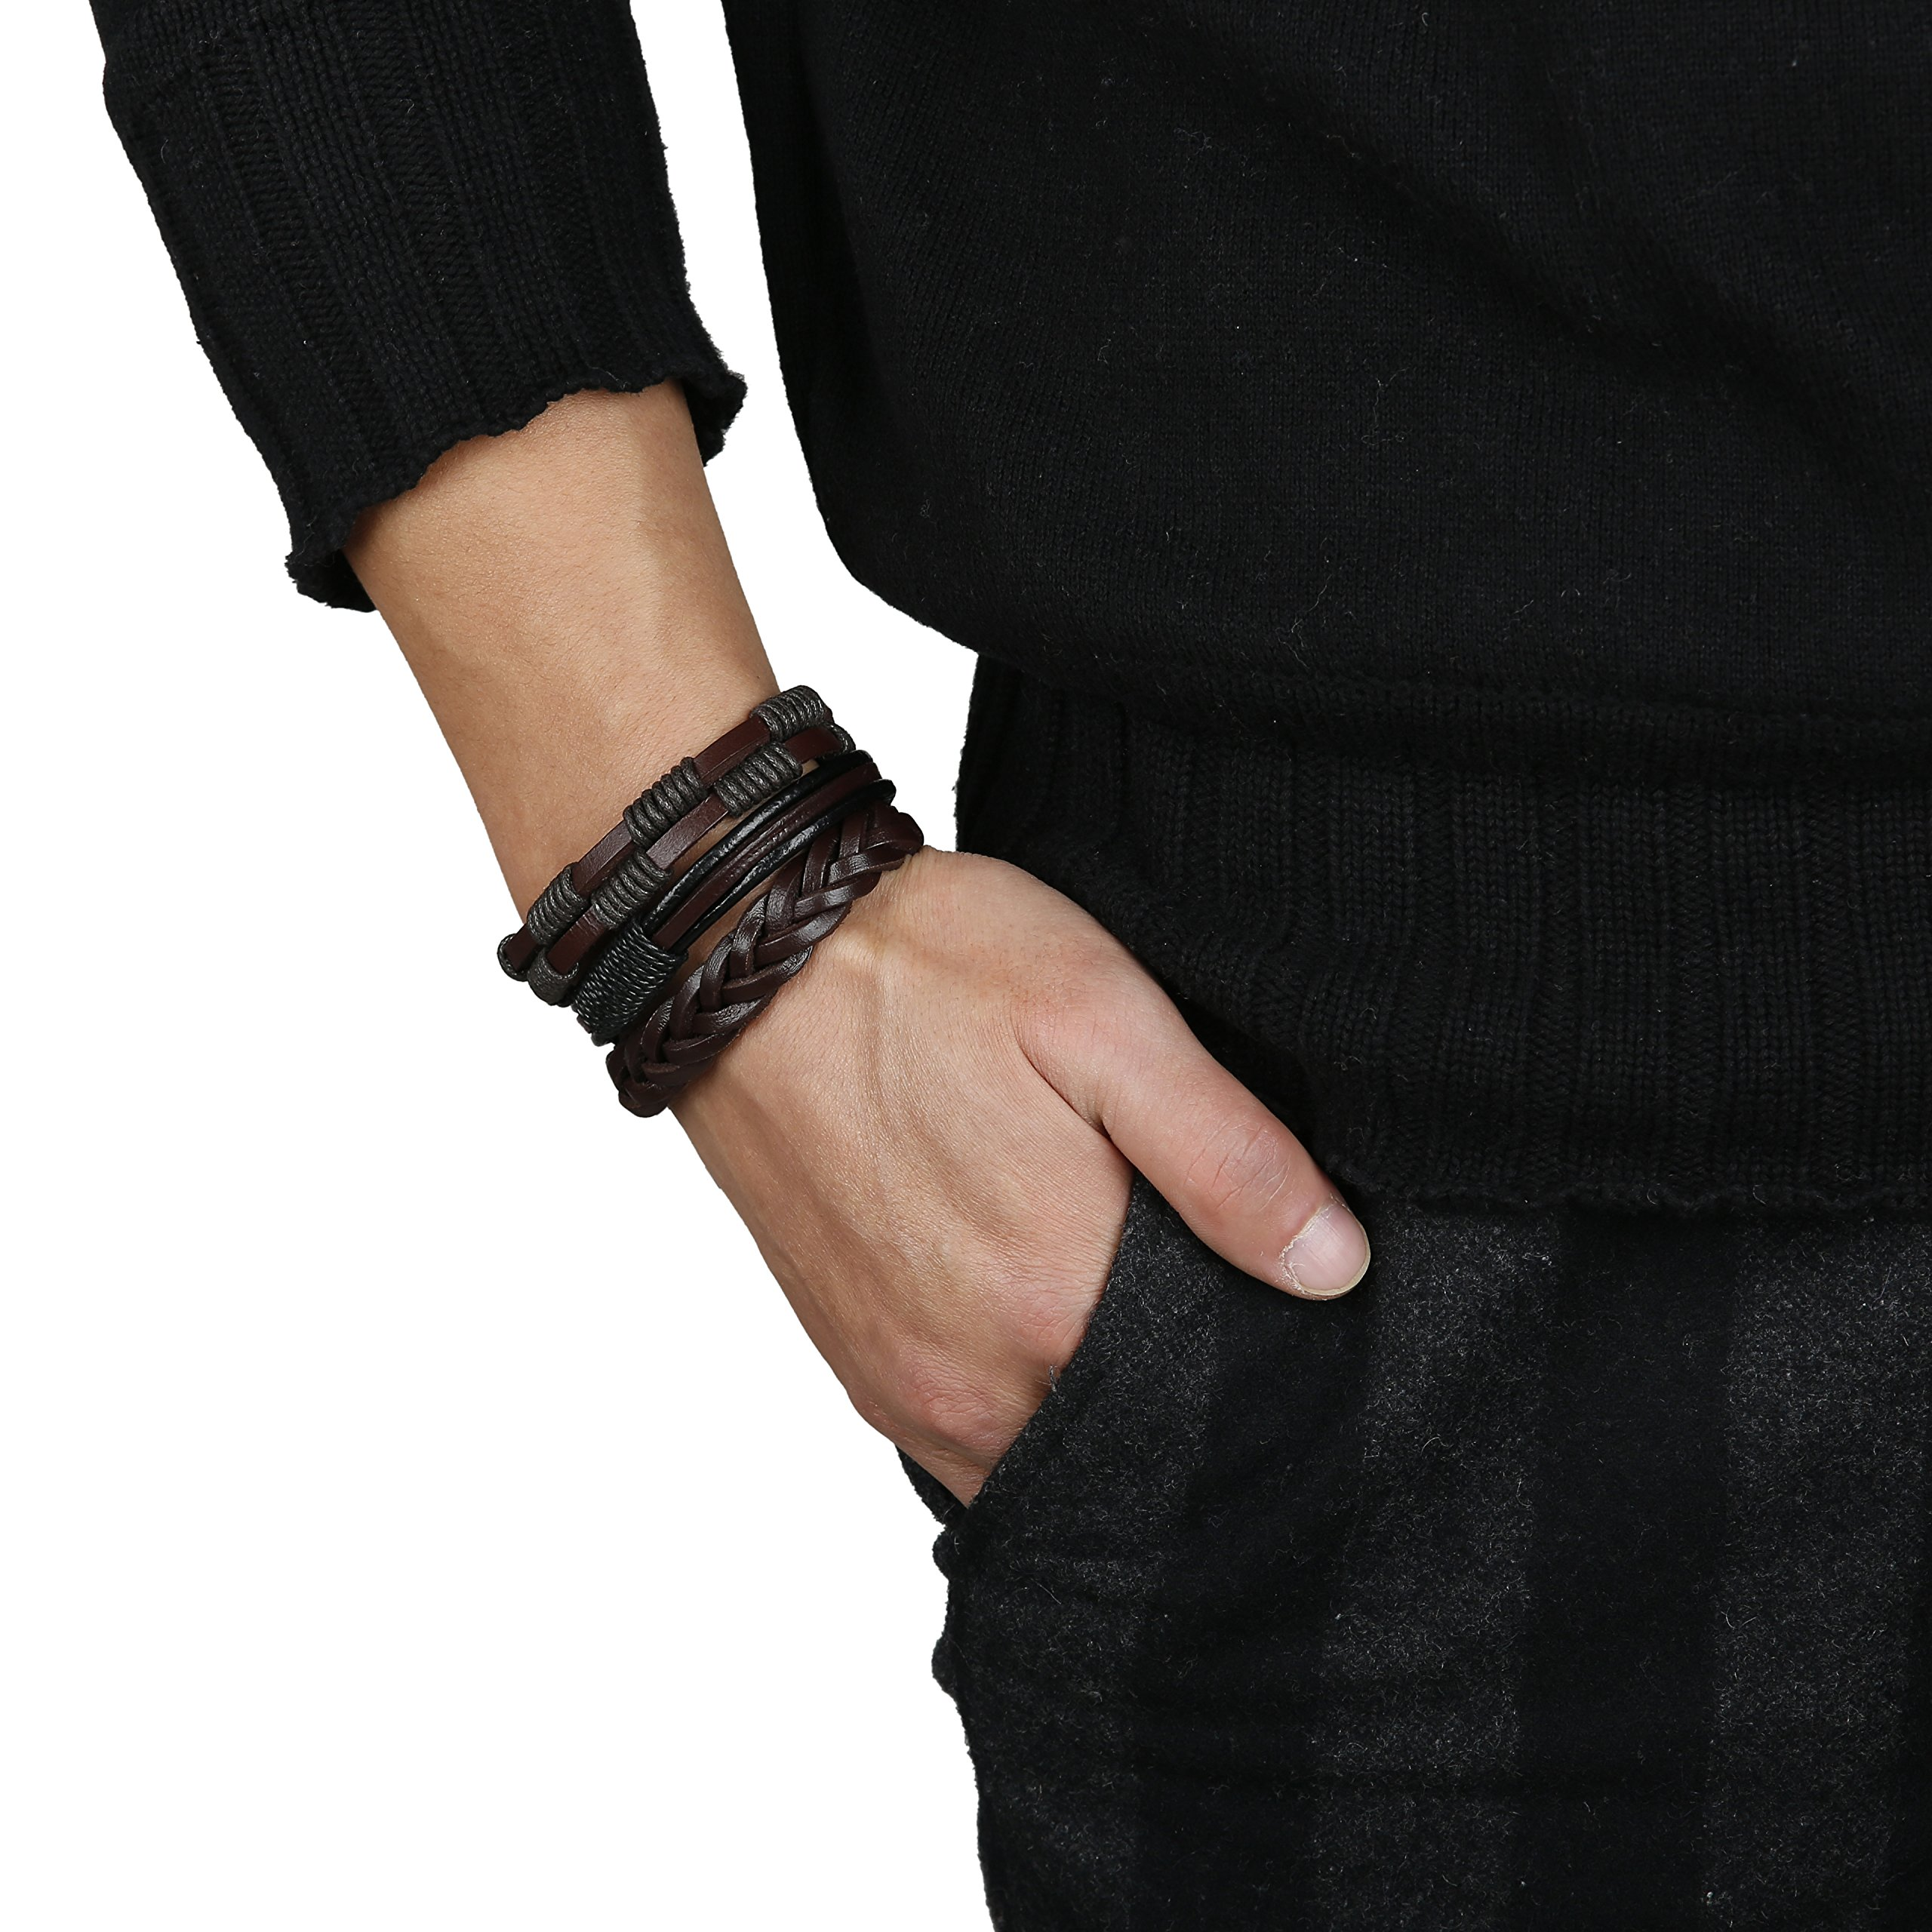 Jstyle 12Pcs Braided Leather Bracelet for Men Women Cuff Wrap Bracelet Adjustable Black and Brown (A:12Pcs) by Jstyle (Image #7)